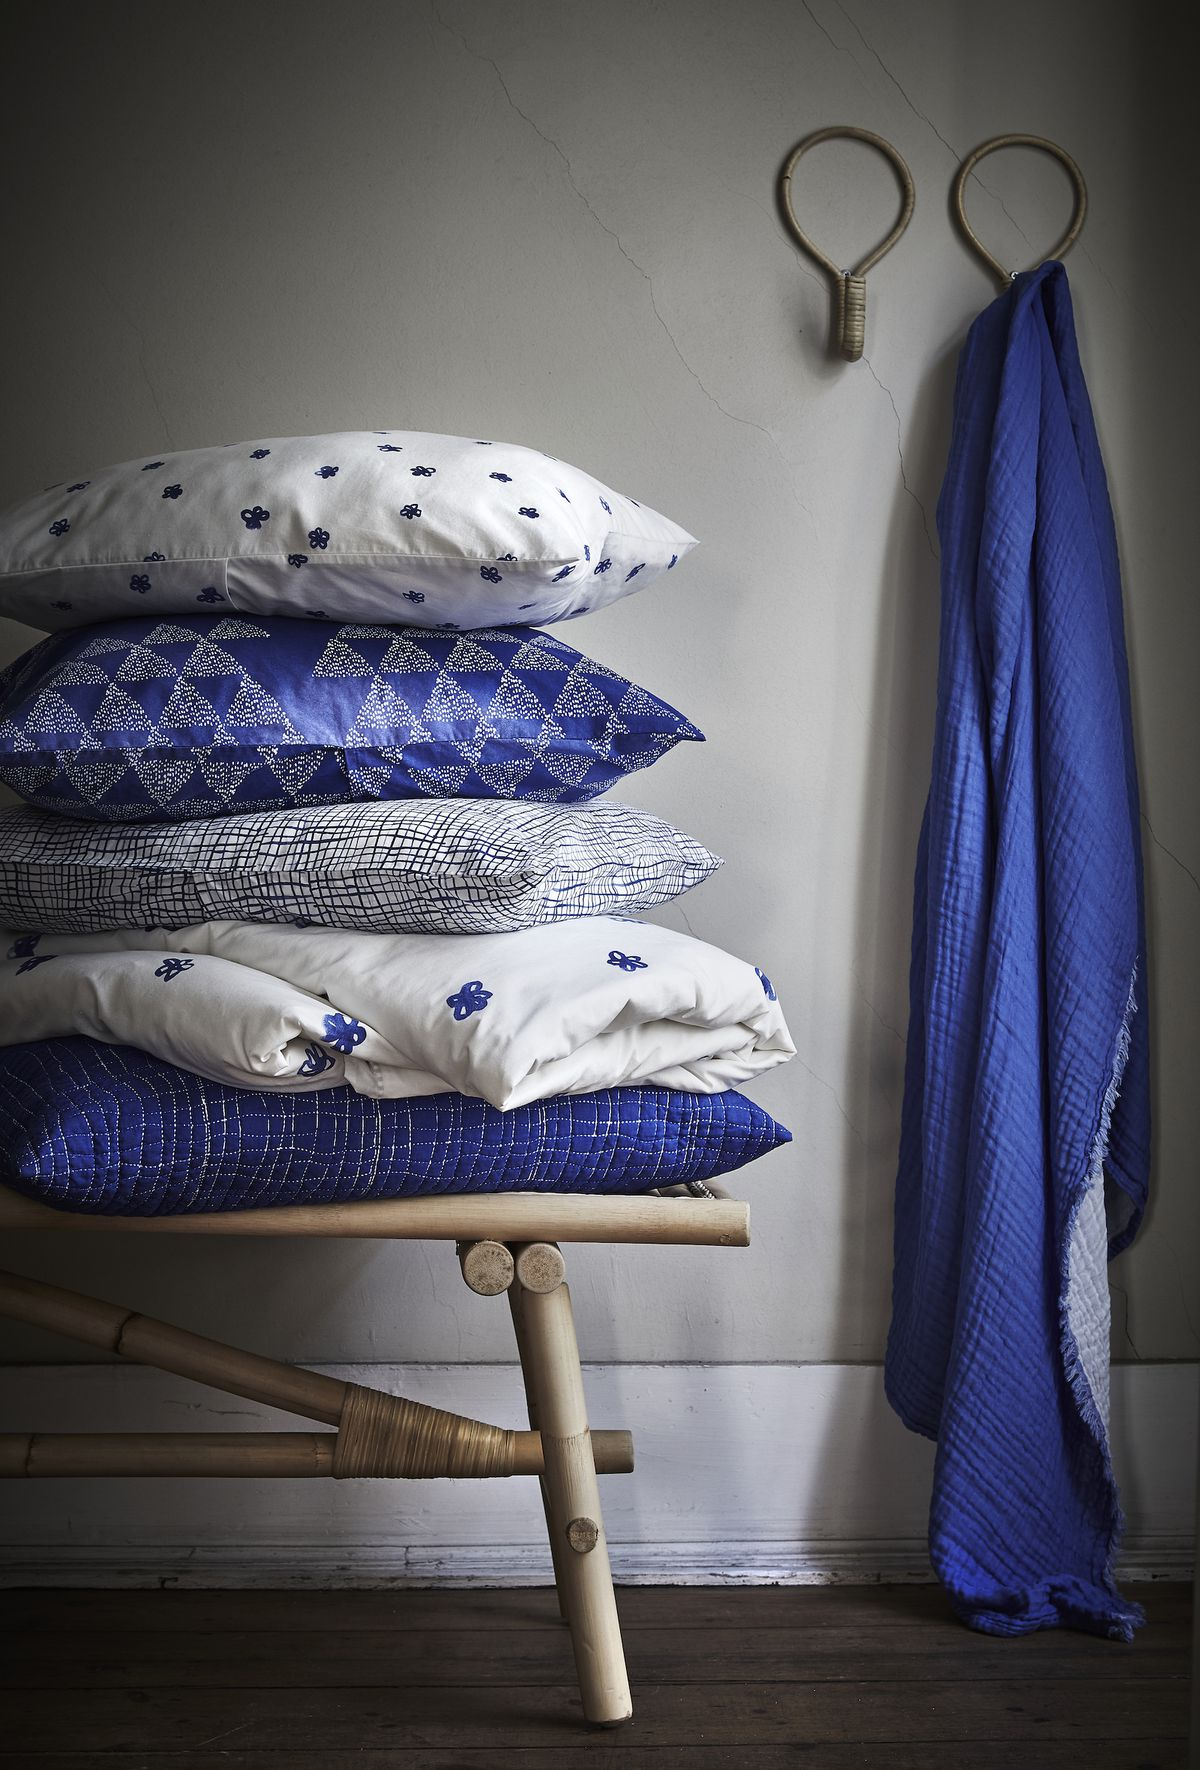 Blue and white pillows on chair